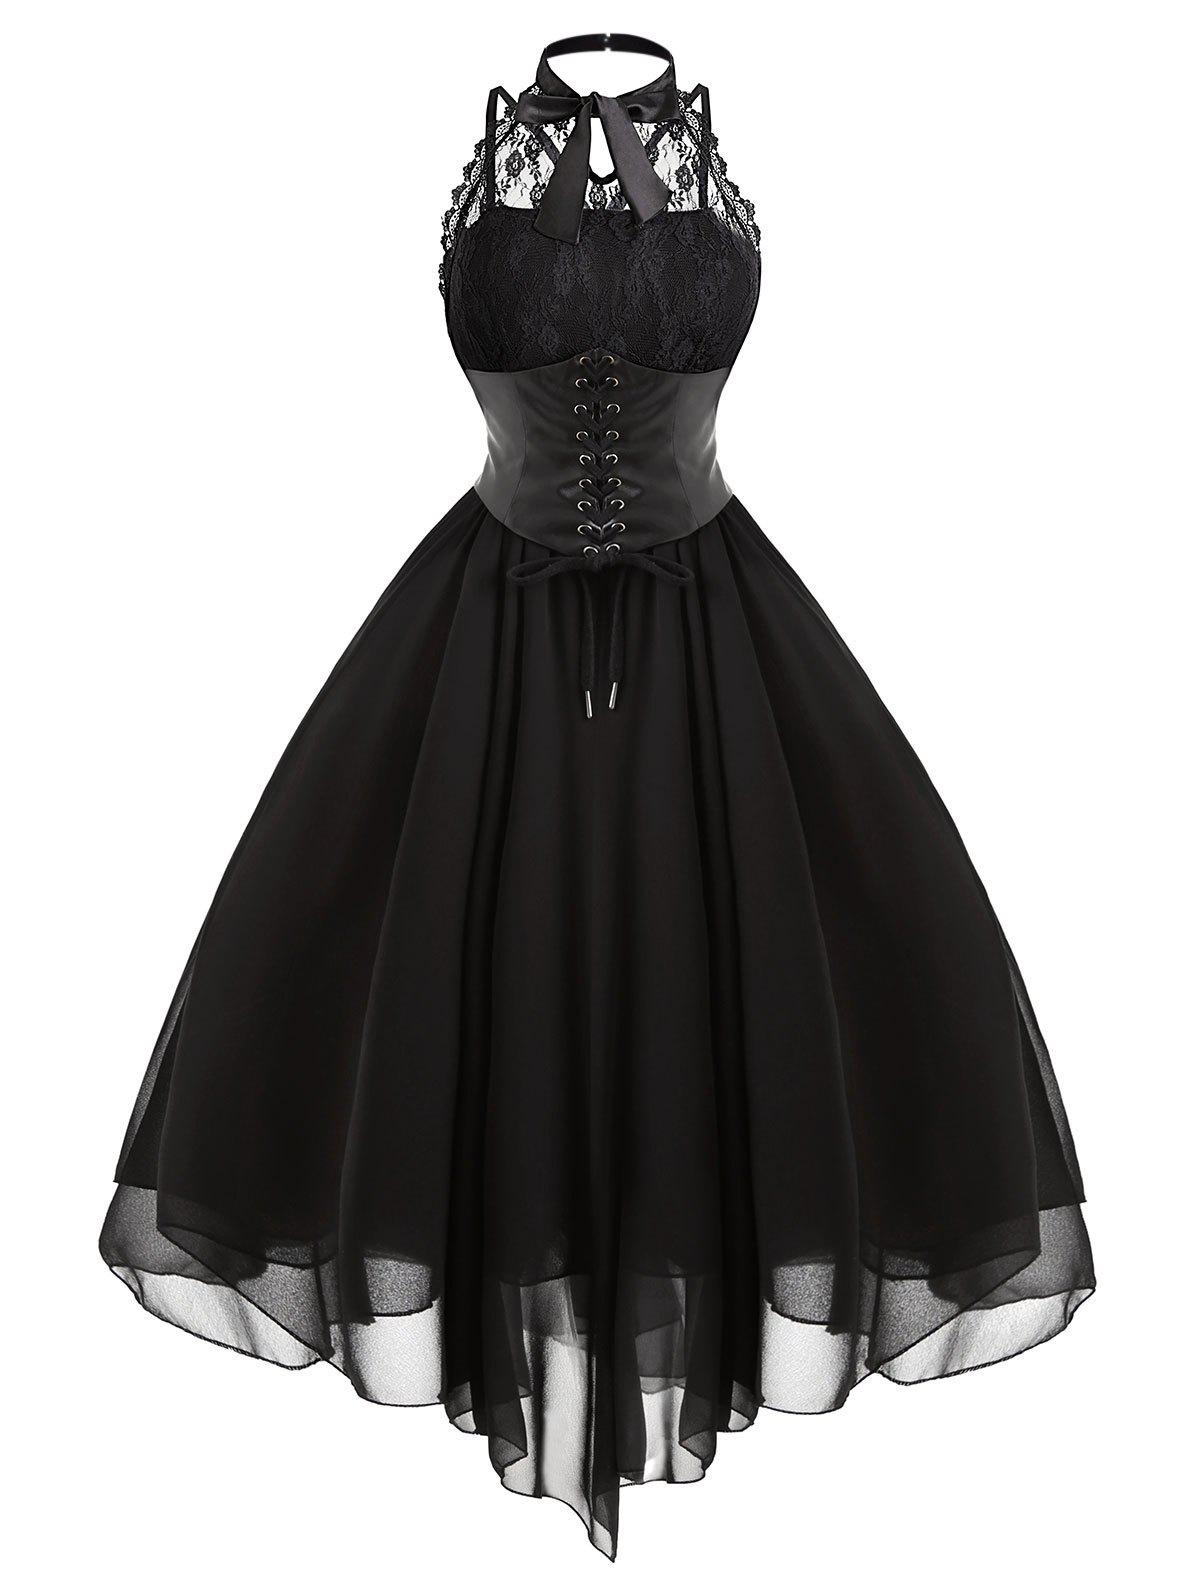 Lace Panel Cross Back Gothic Corset Dress - BLACK L